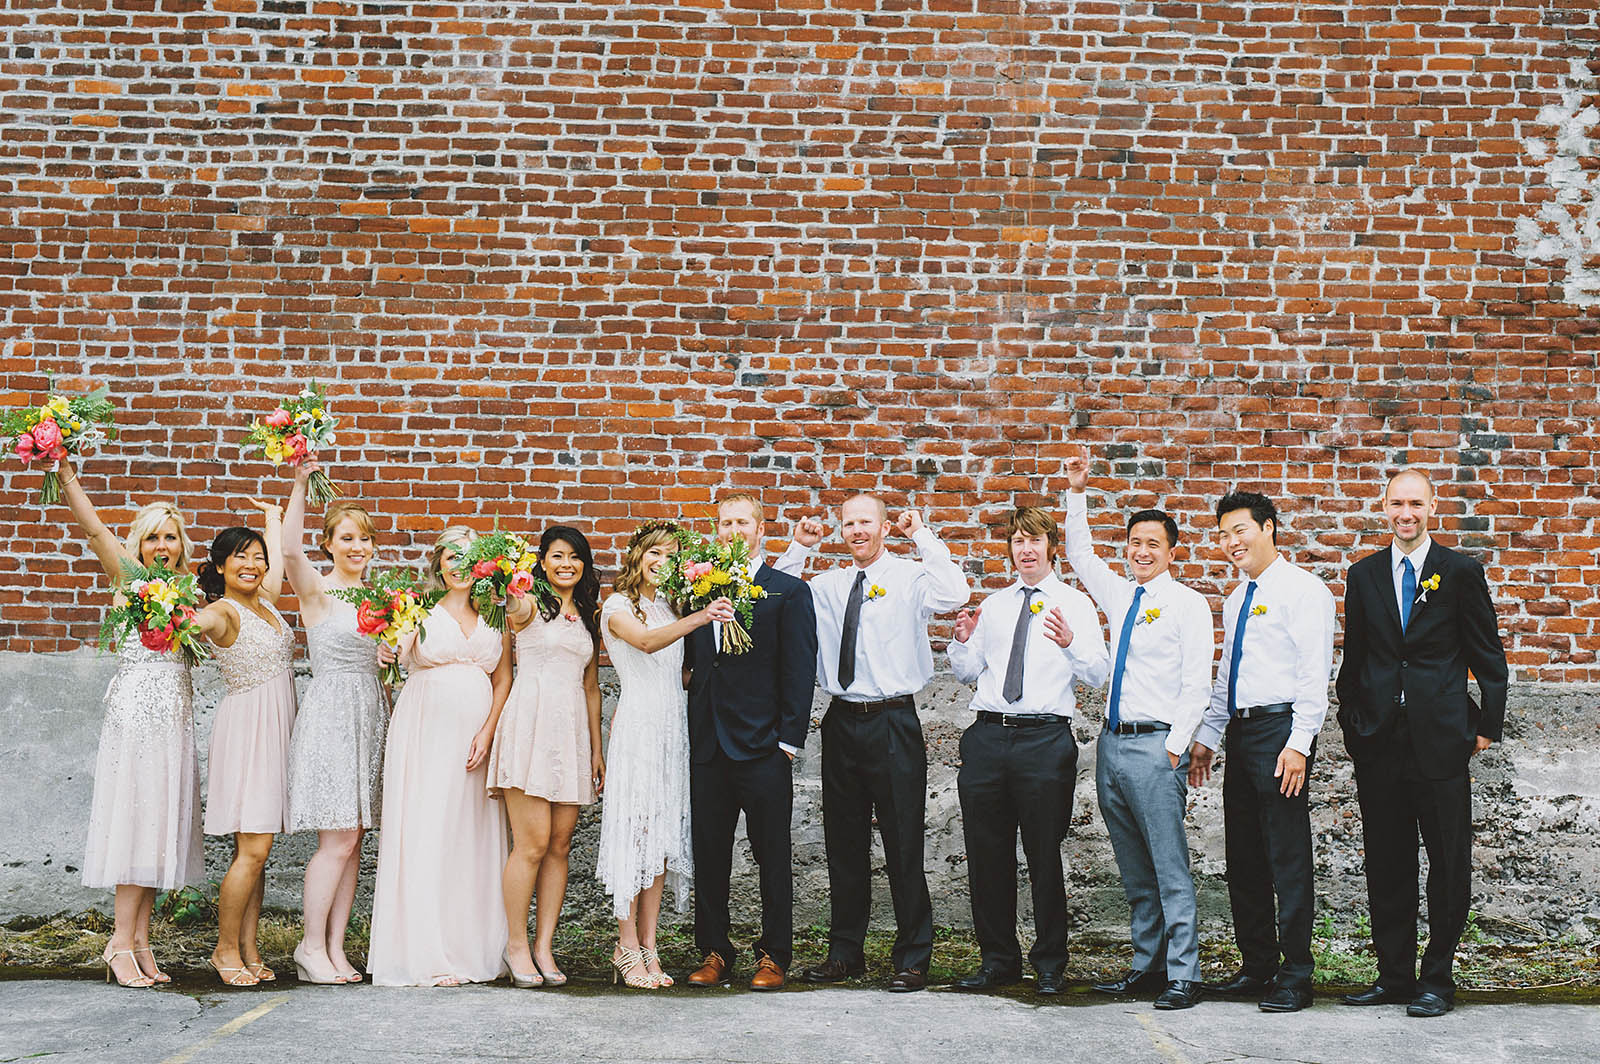 Wedding party cheering for the newlyweds | Castaway Portland Wedding